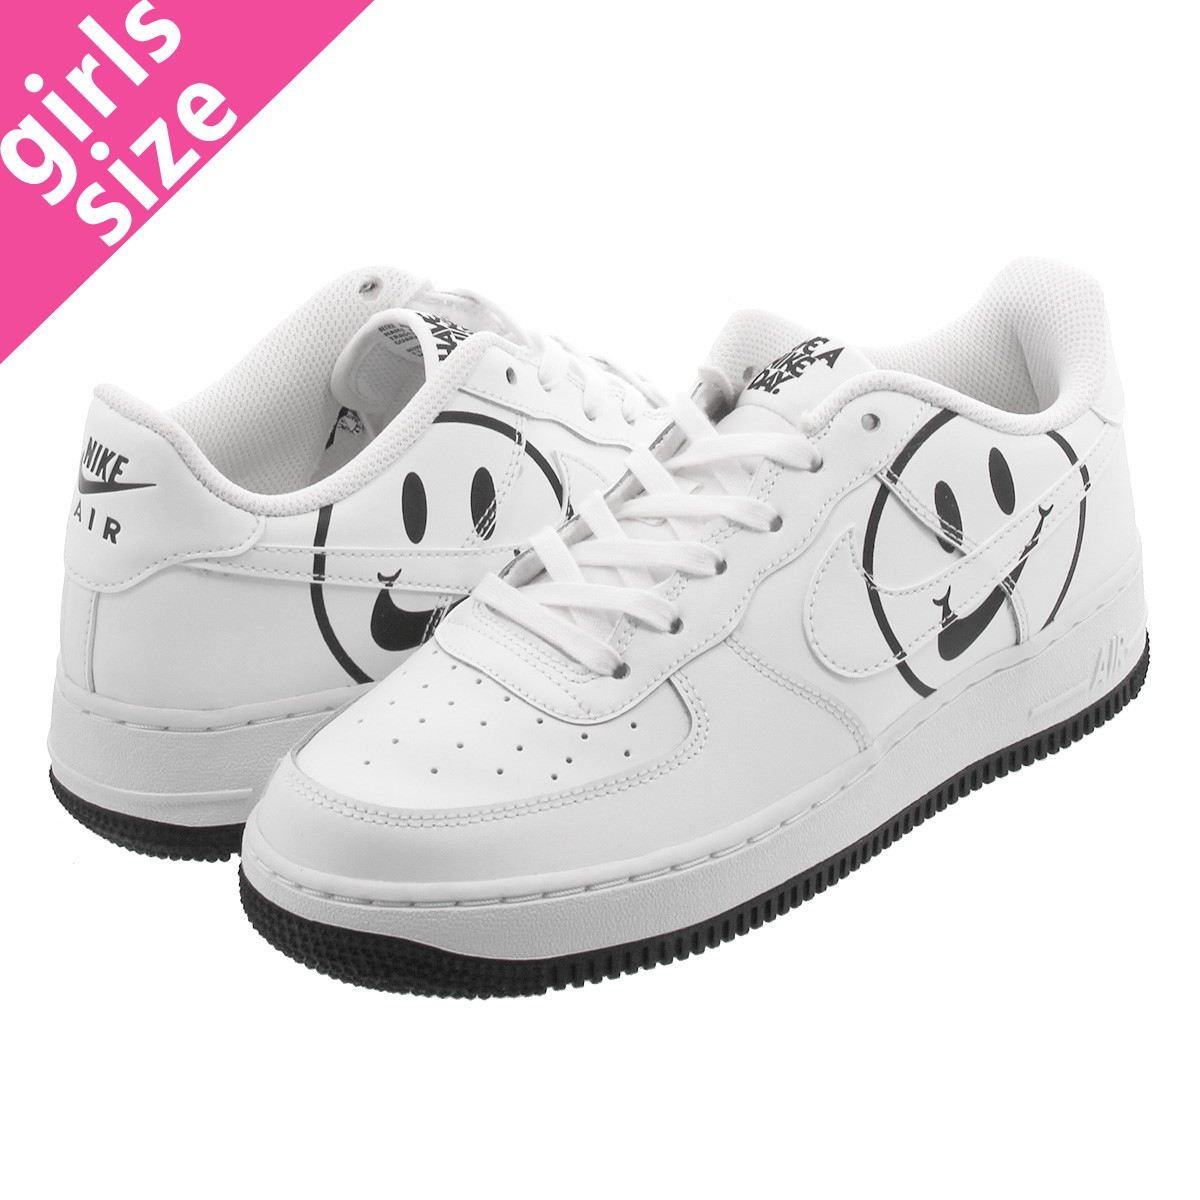 best service 4f73f adc71 NIKE AIR FORCE 1 LV8 2 GS Nike air force 1 LV8 2 GS WHITE  ...